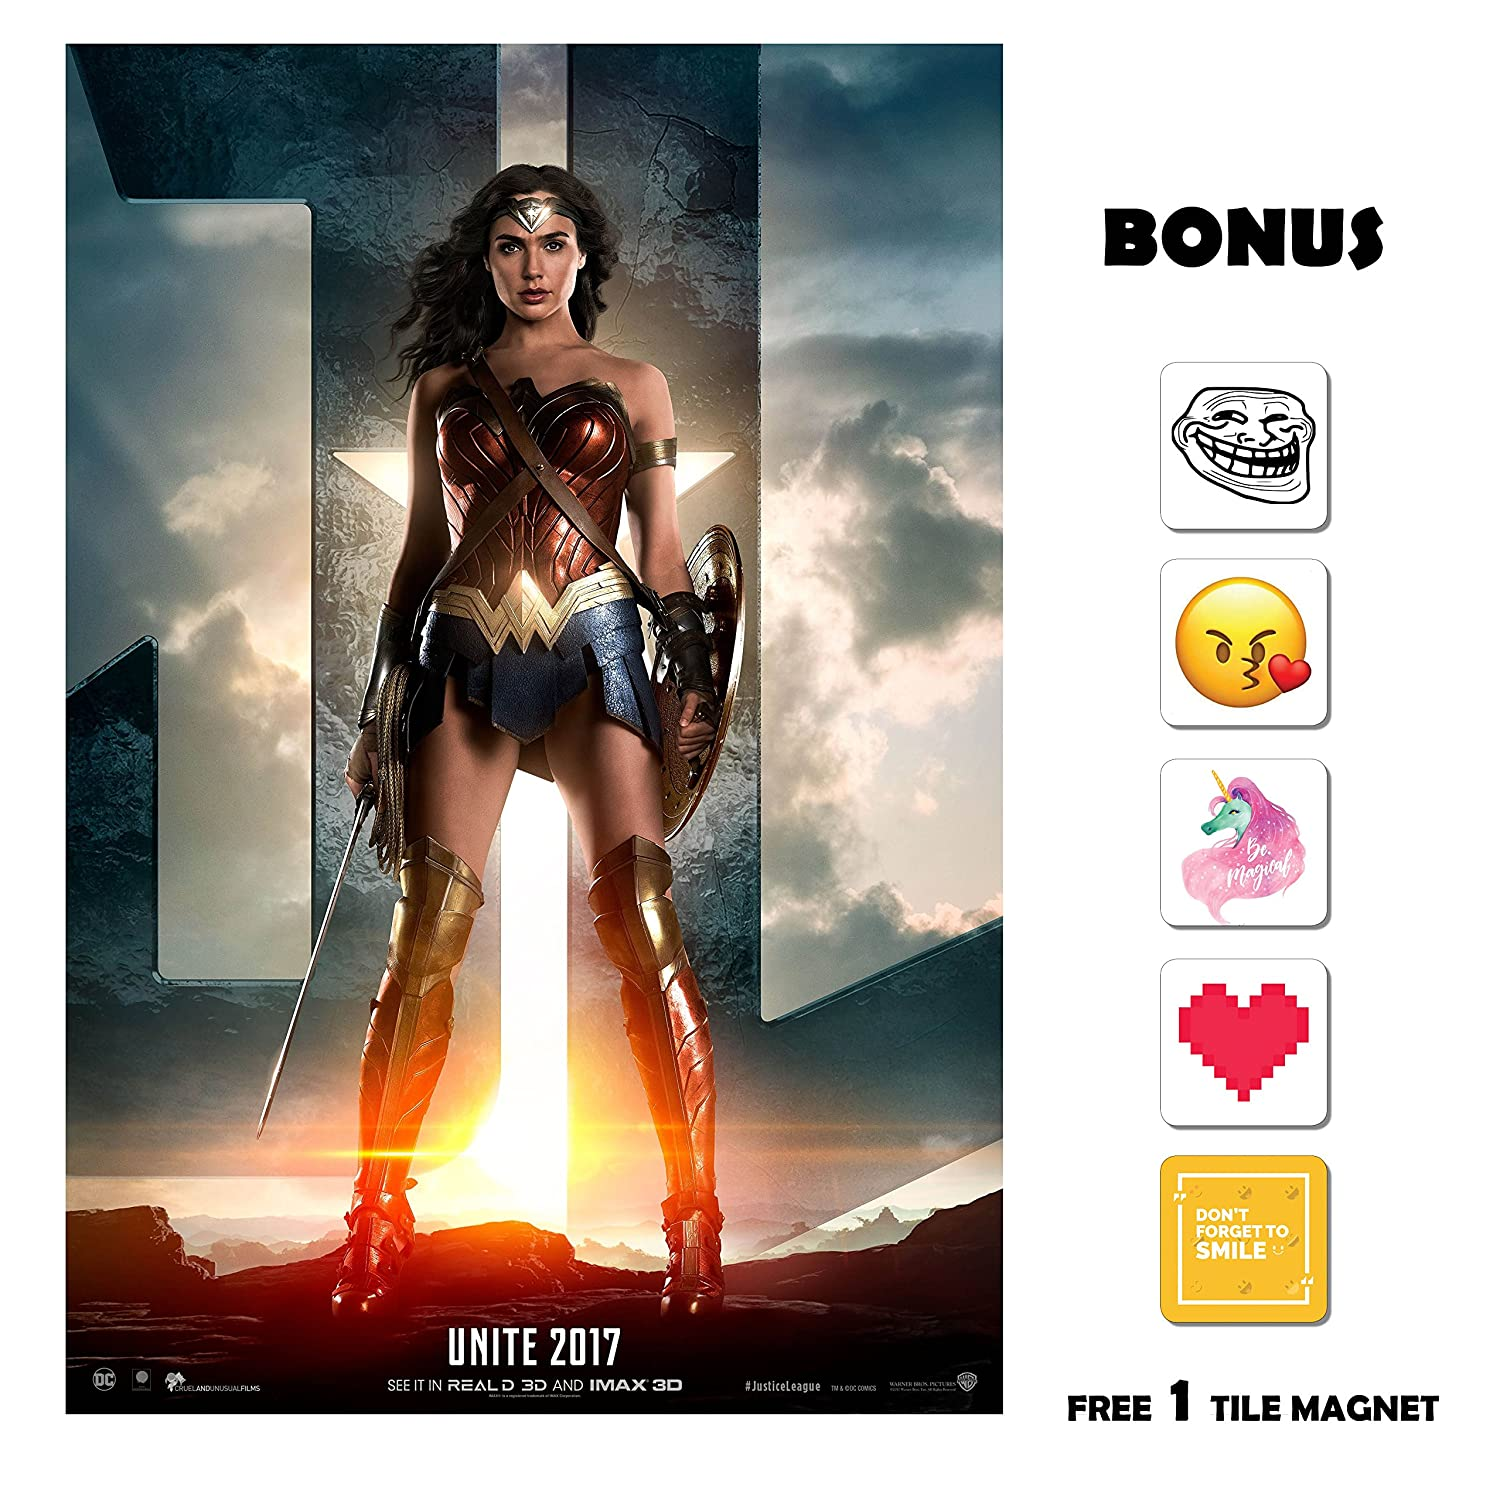 Justice League (2017) - Wonder Woman - 13 in x 19 in Movie Poster Flyer BORDERLESS + Free 1 Tile Magnet